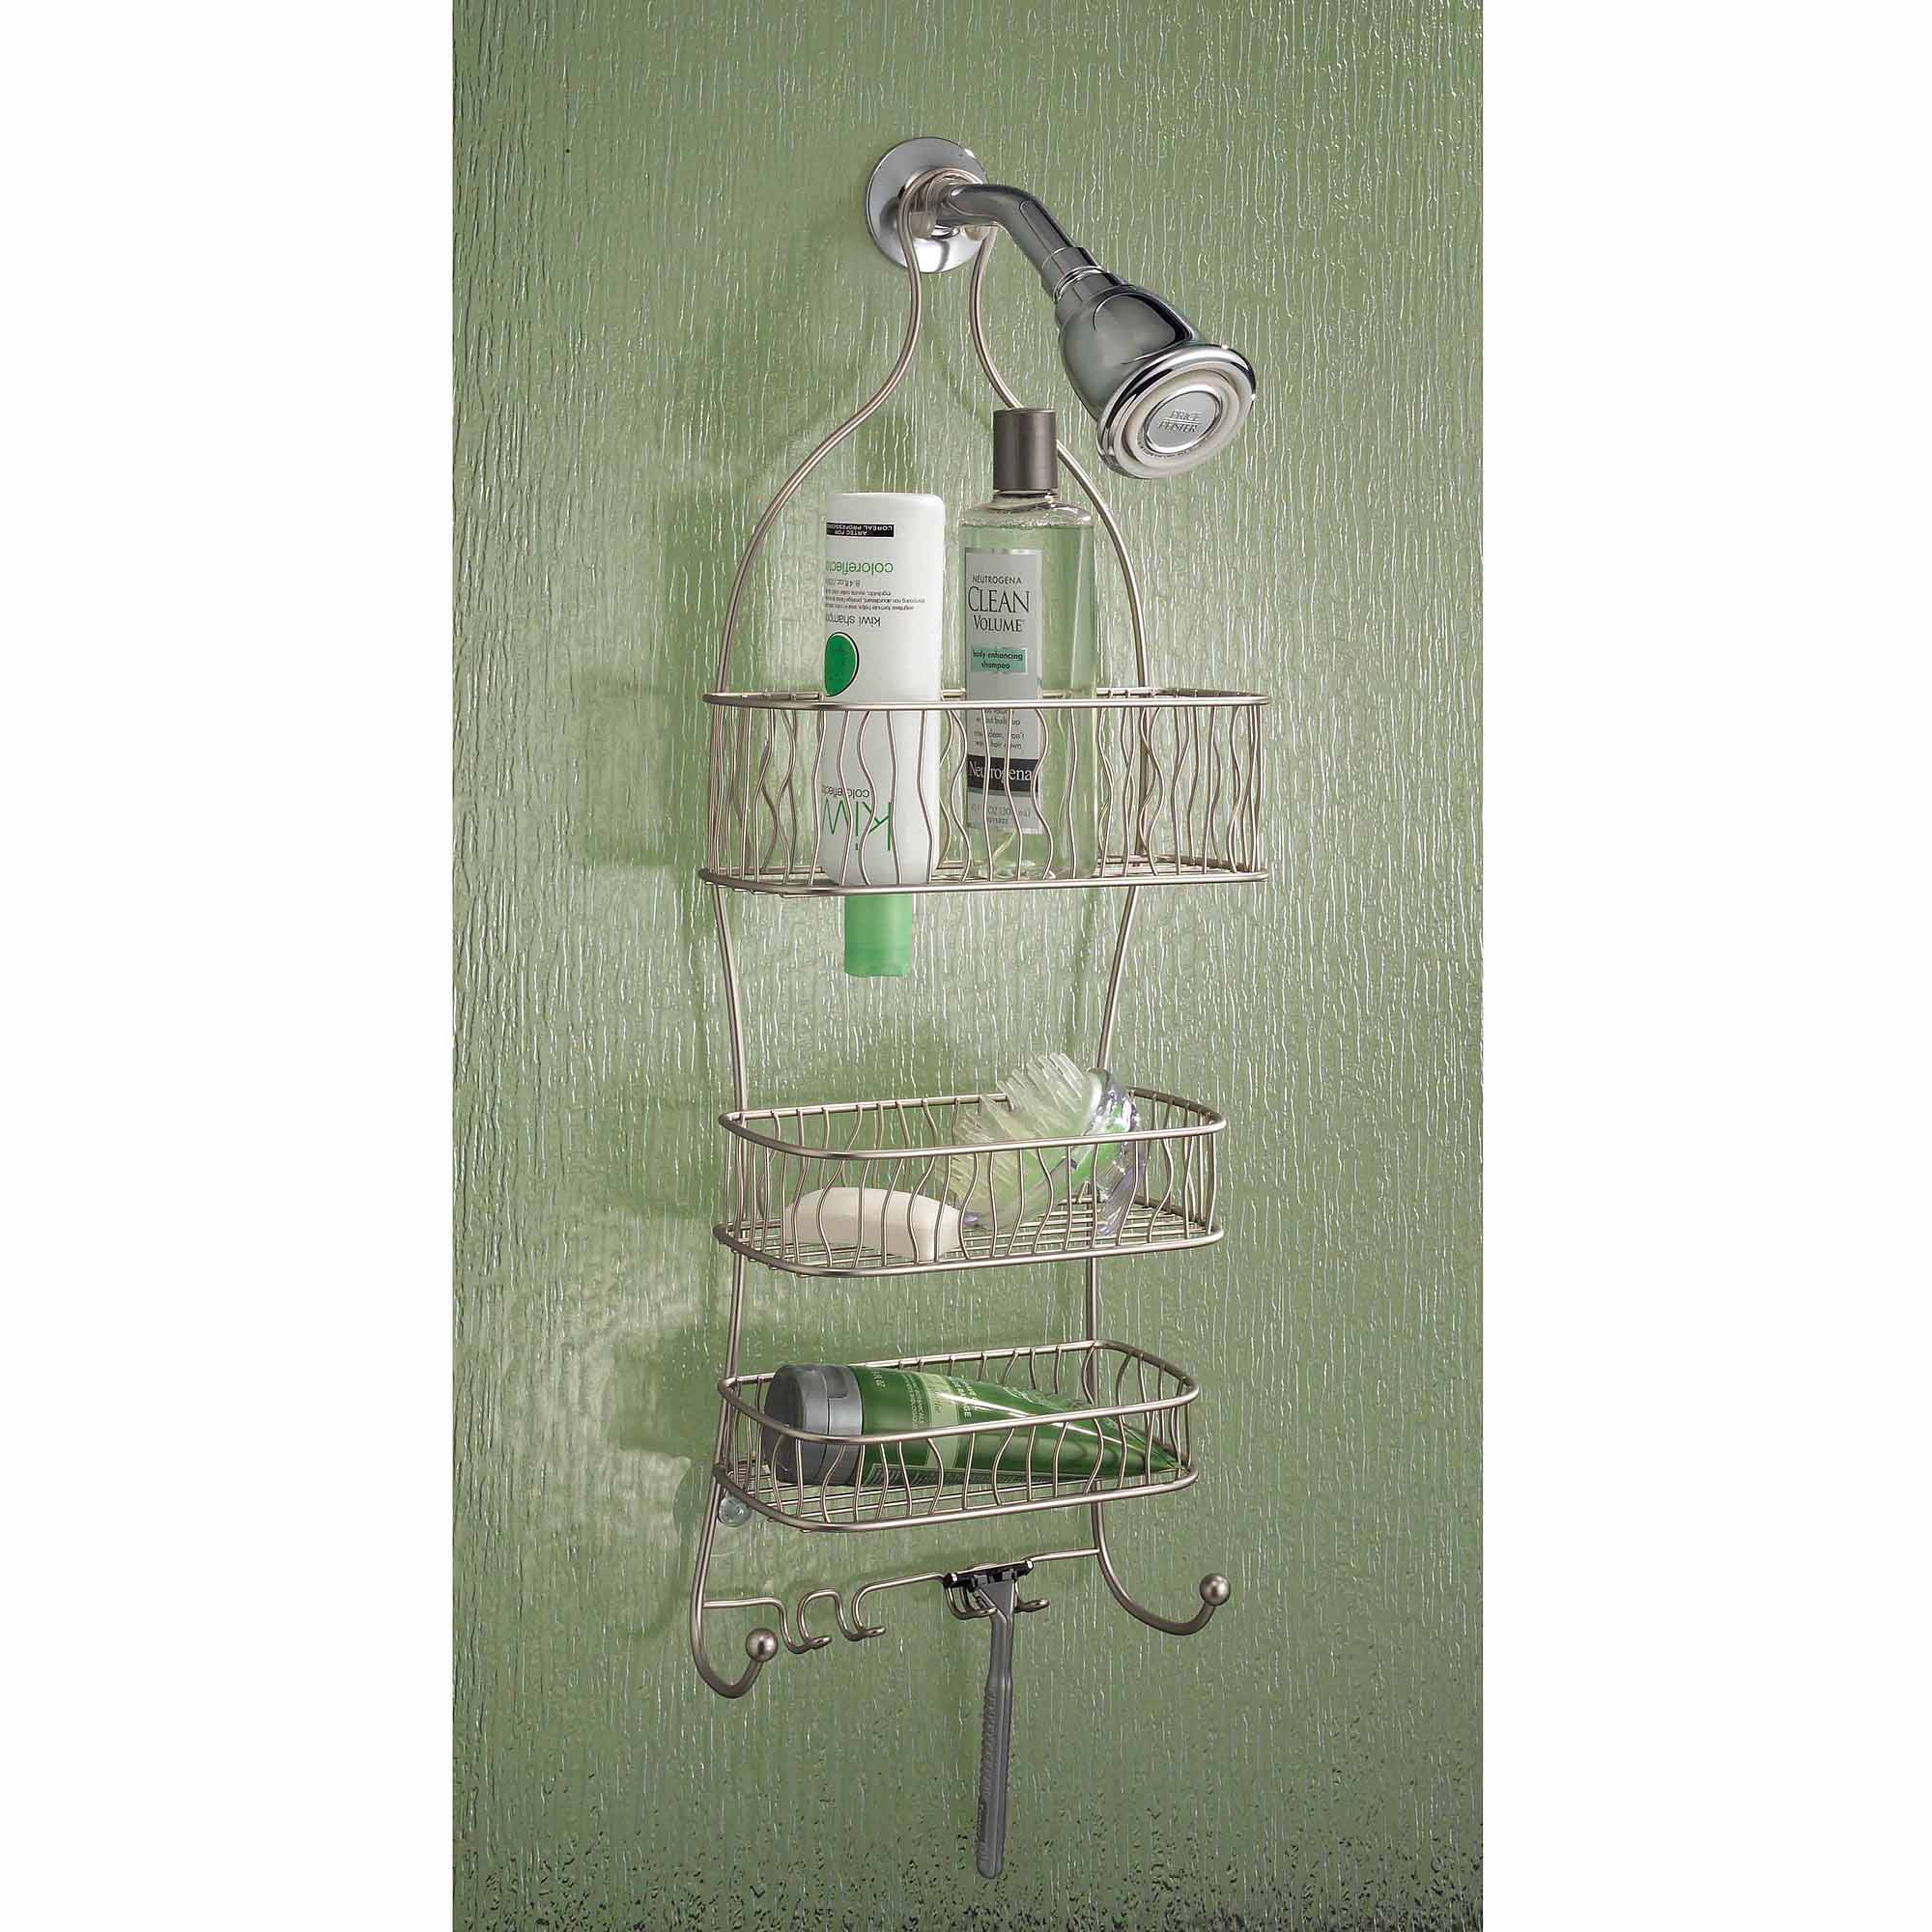 InterDesign Squiggle Bathroom Shower Caddy for Shampoo, Conditioner, Soap, Satin by INTERDESIGN